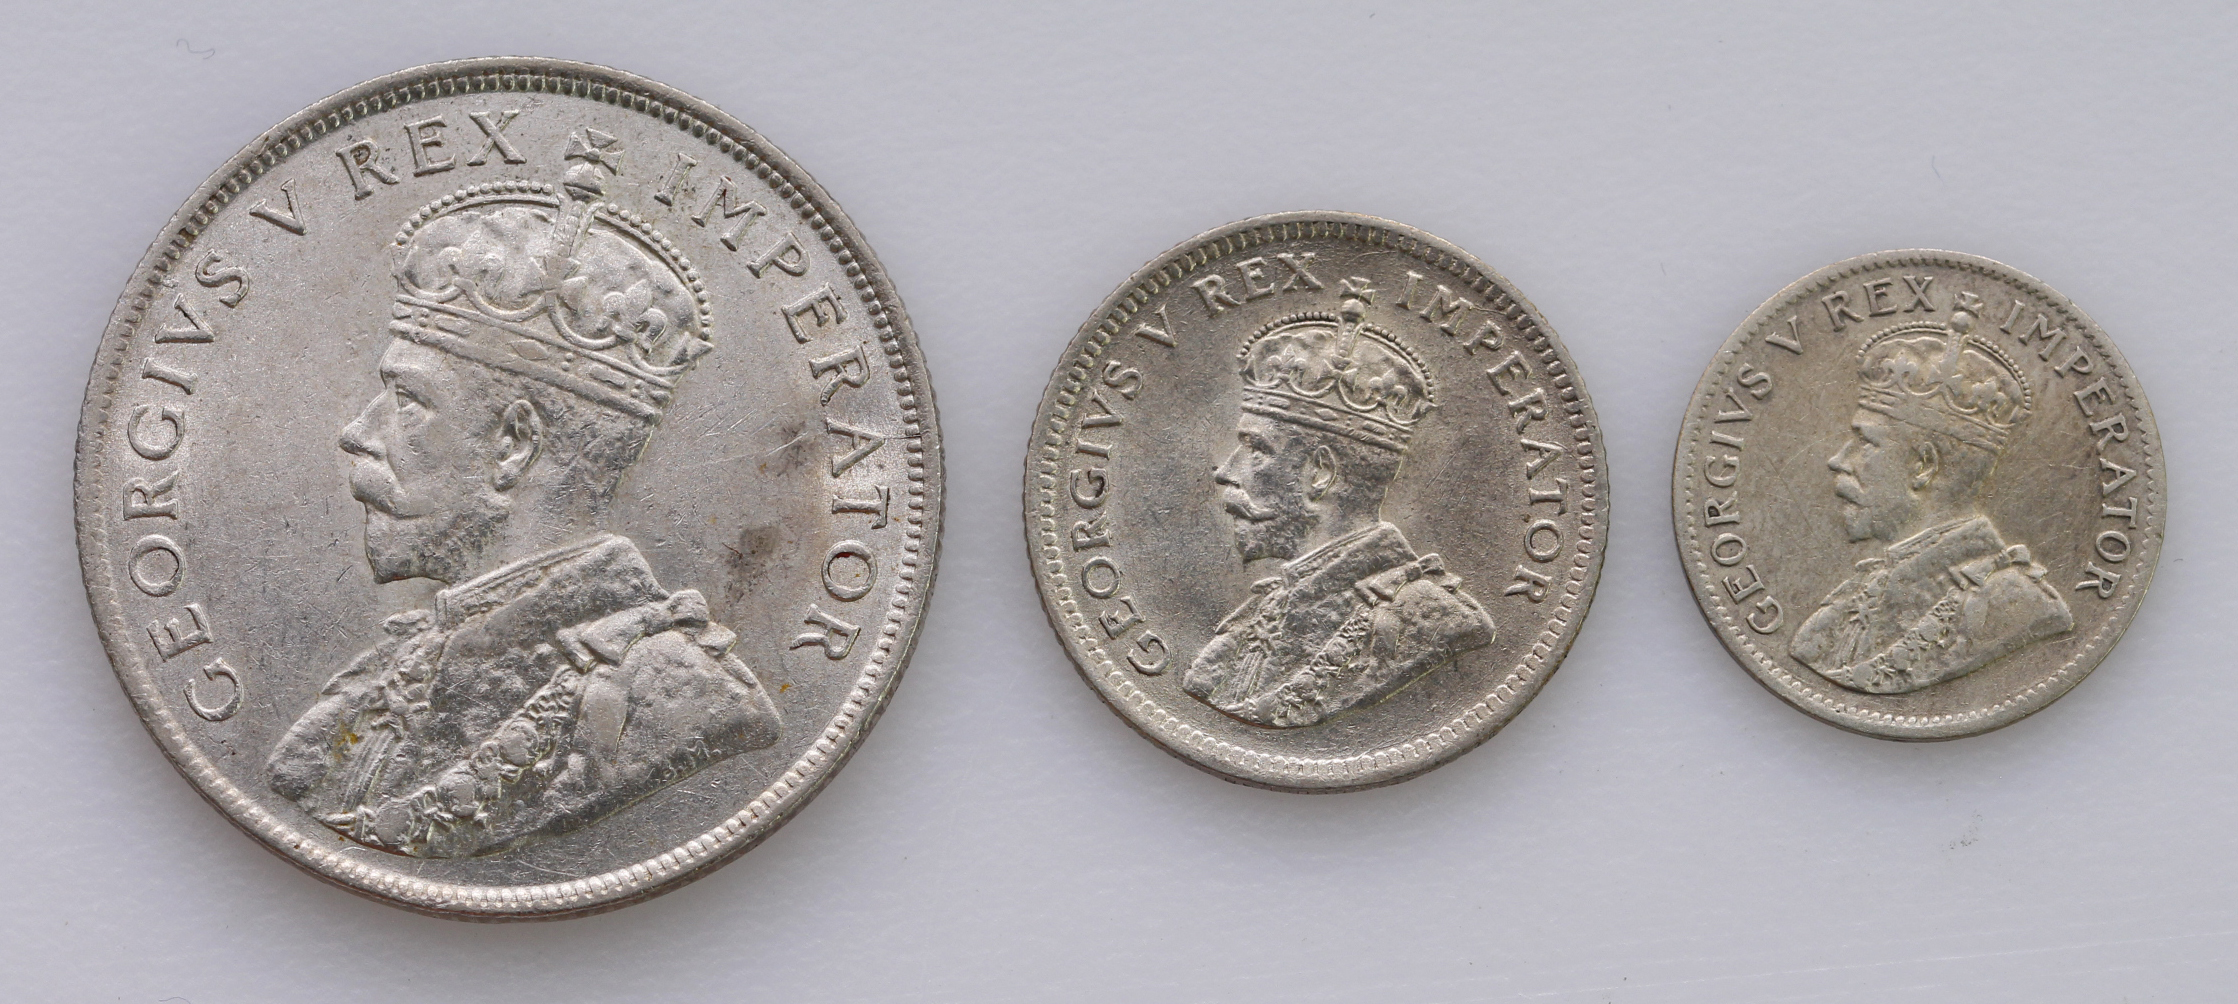 South Africa (3): Florin 1928 aEF, Sixpence 1929 EF, and Threepence 1925 wreath type VF, light